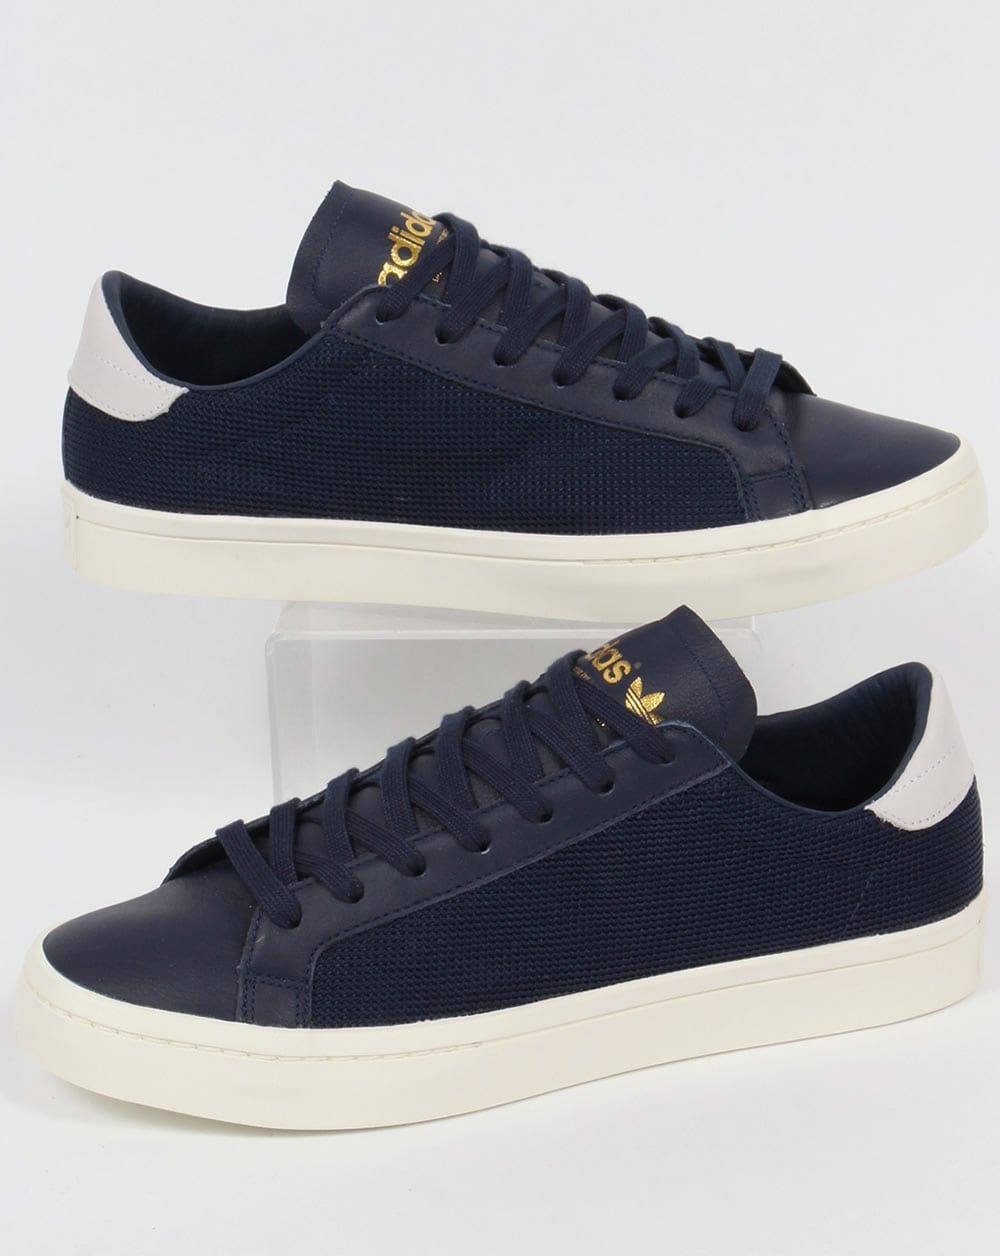 397bf30dc791 adidas Trainers Adidas Originals Court Vantage Trainers Navy